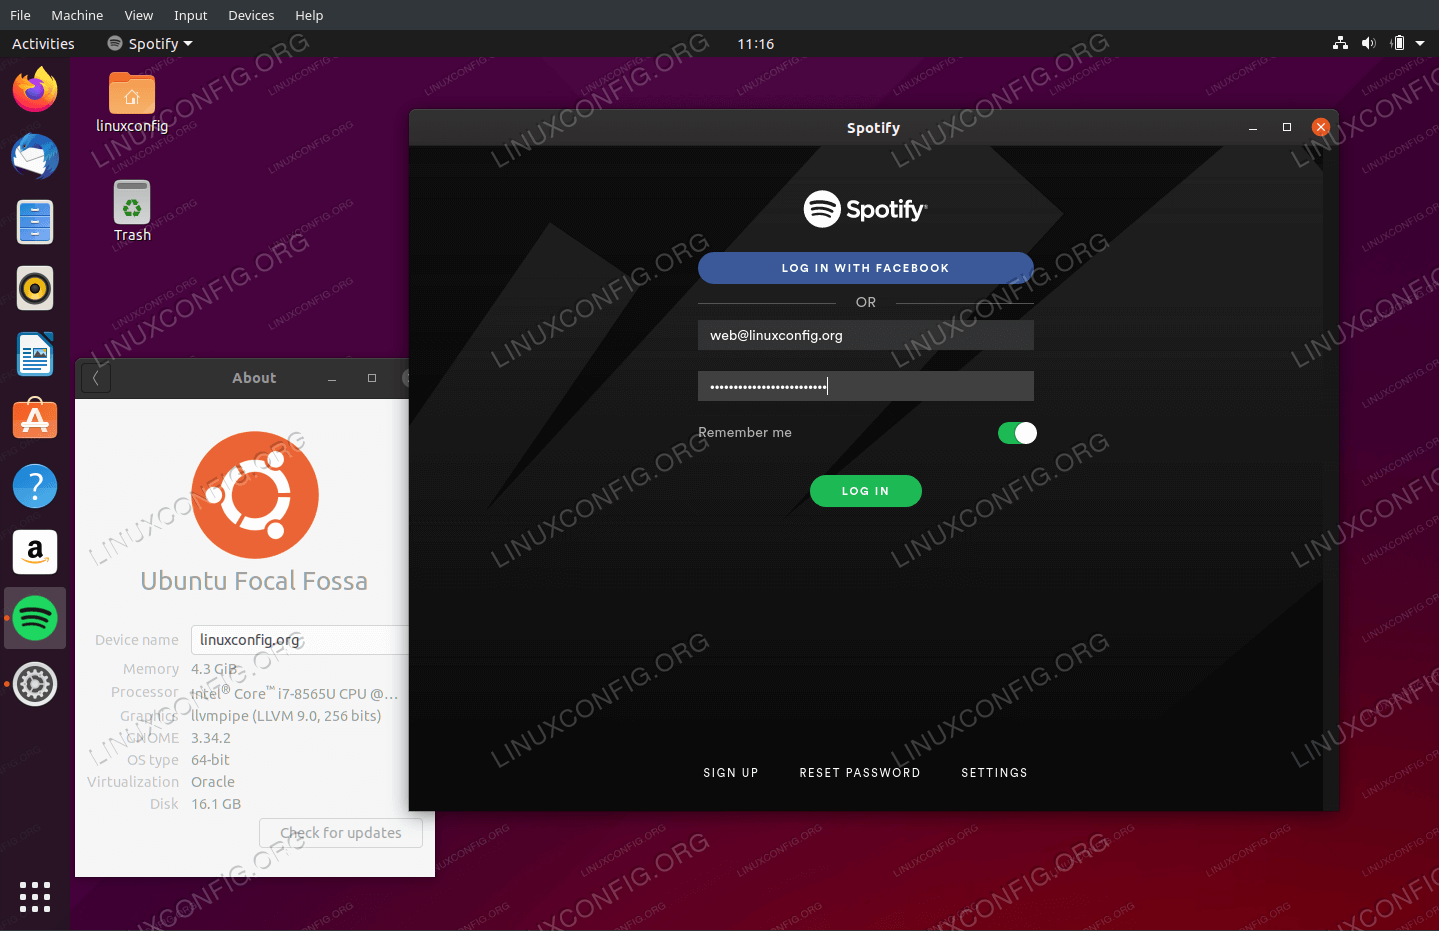 Spotify on Ubuntu 20.04 Focal Fossa Linux